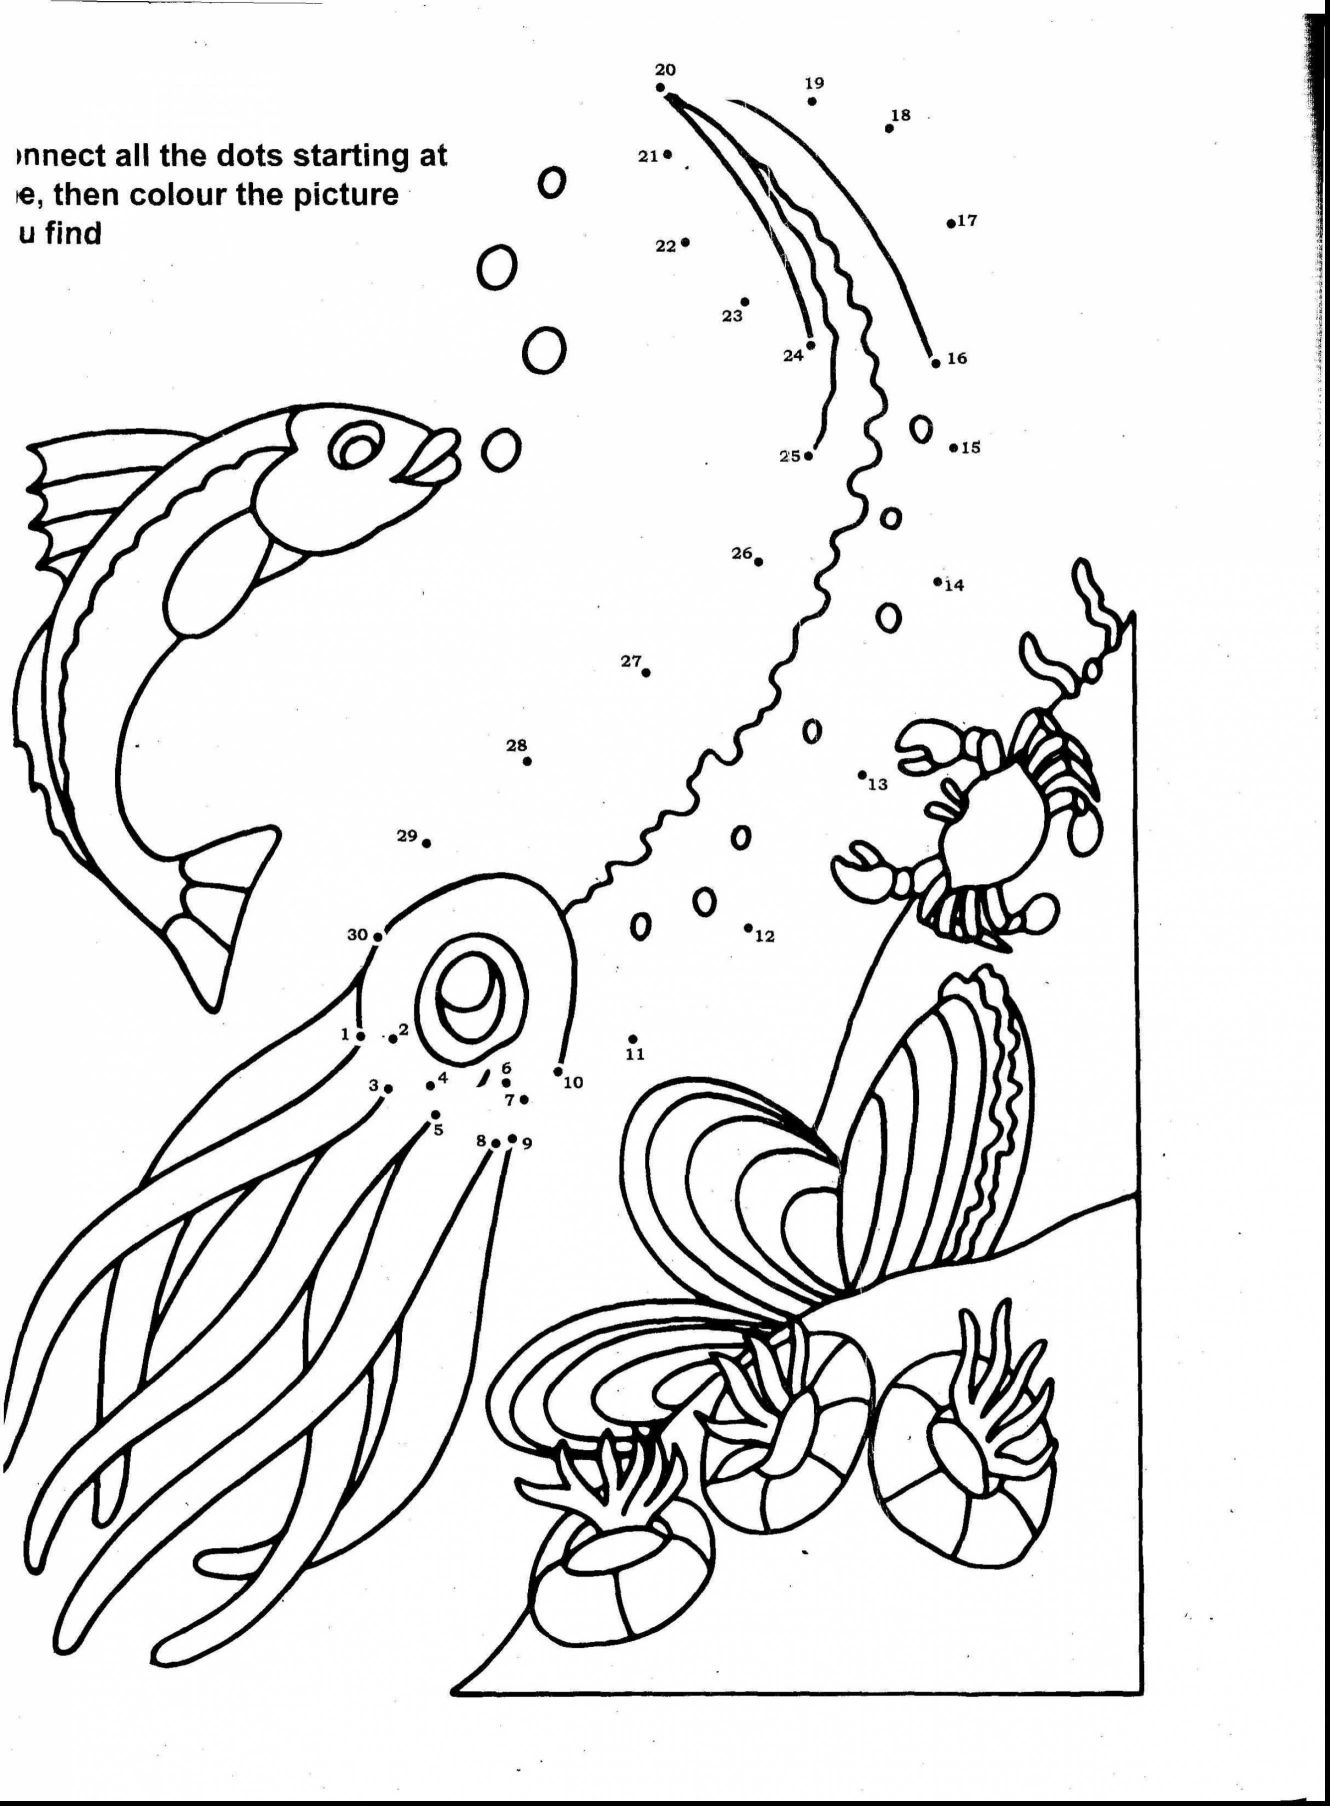 ocean plants coloring pages coral reef in line art style ocean plants and rocks ocean coloring plants pages